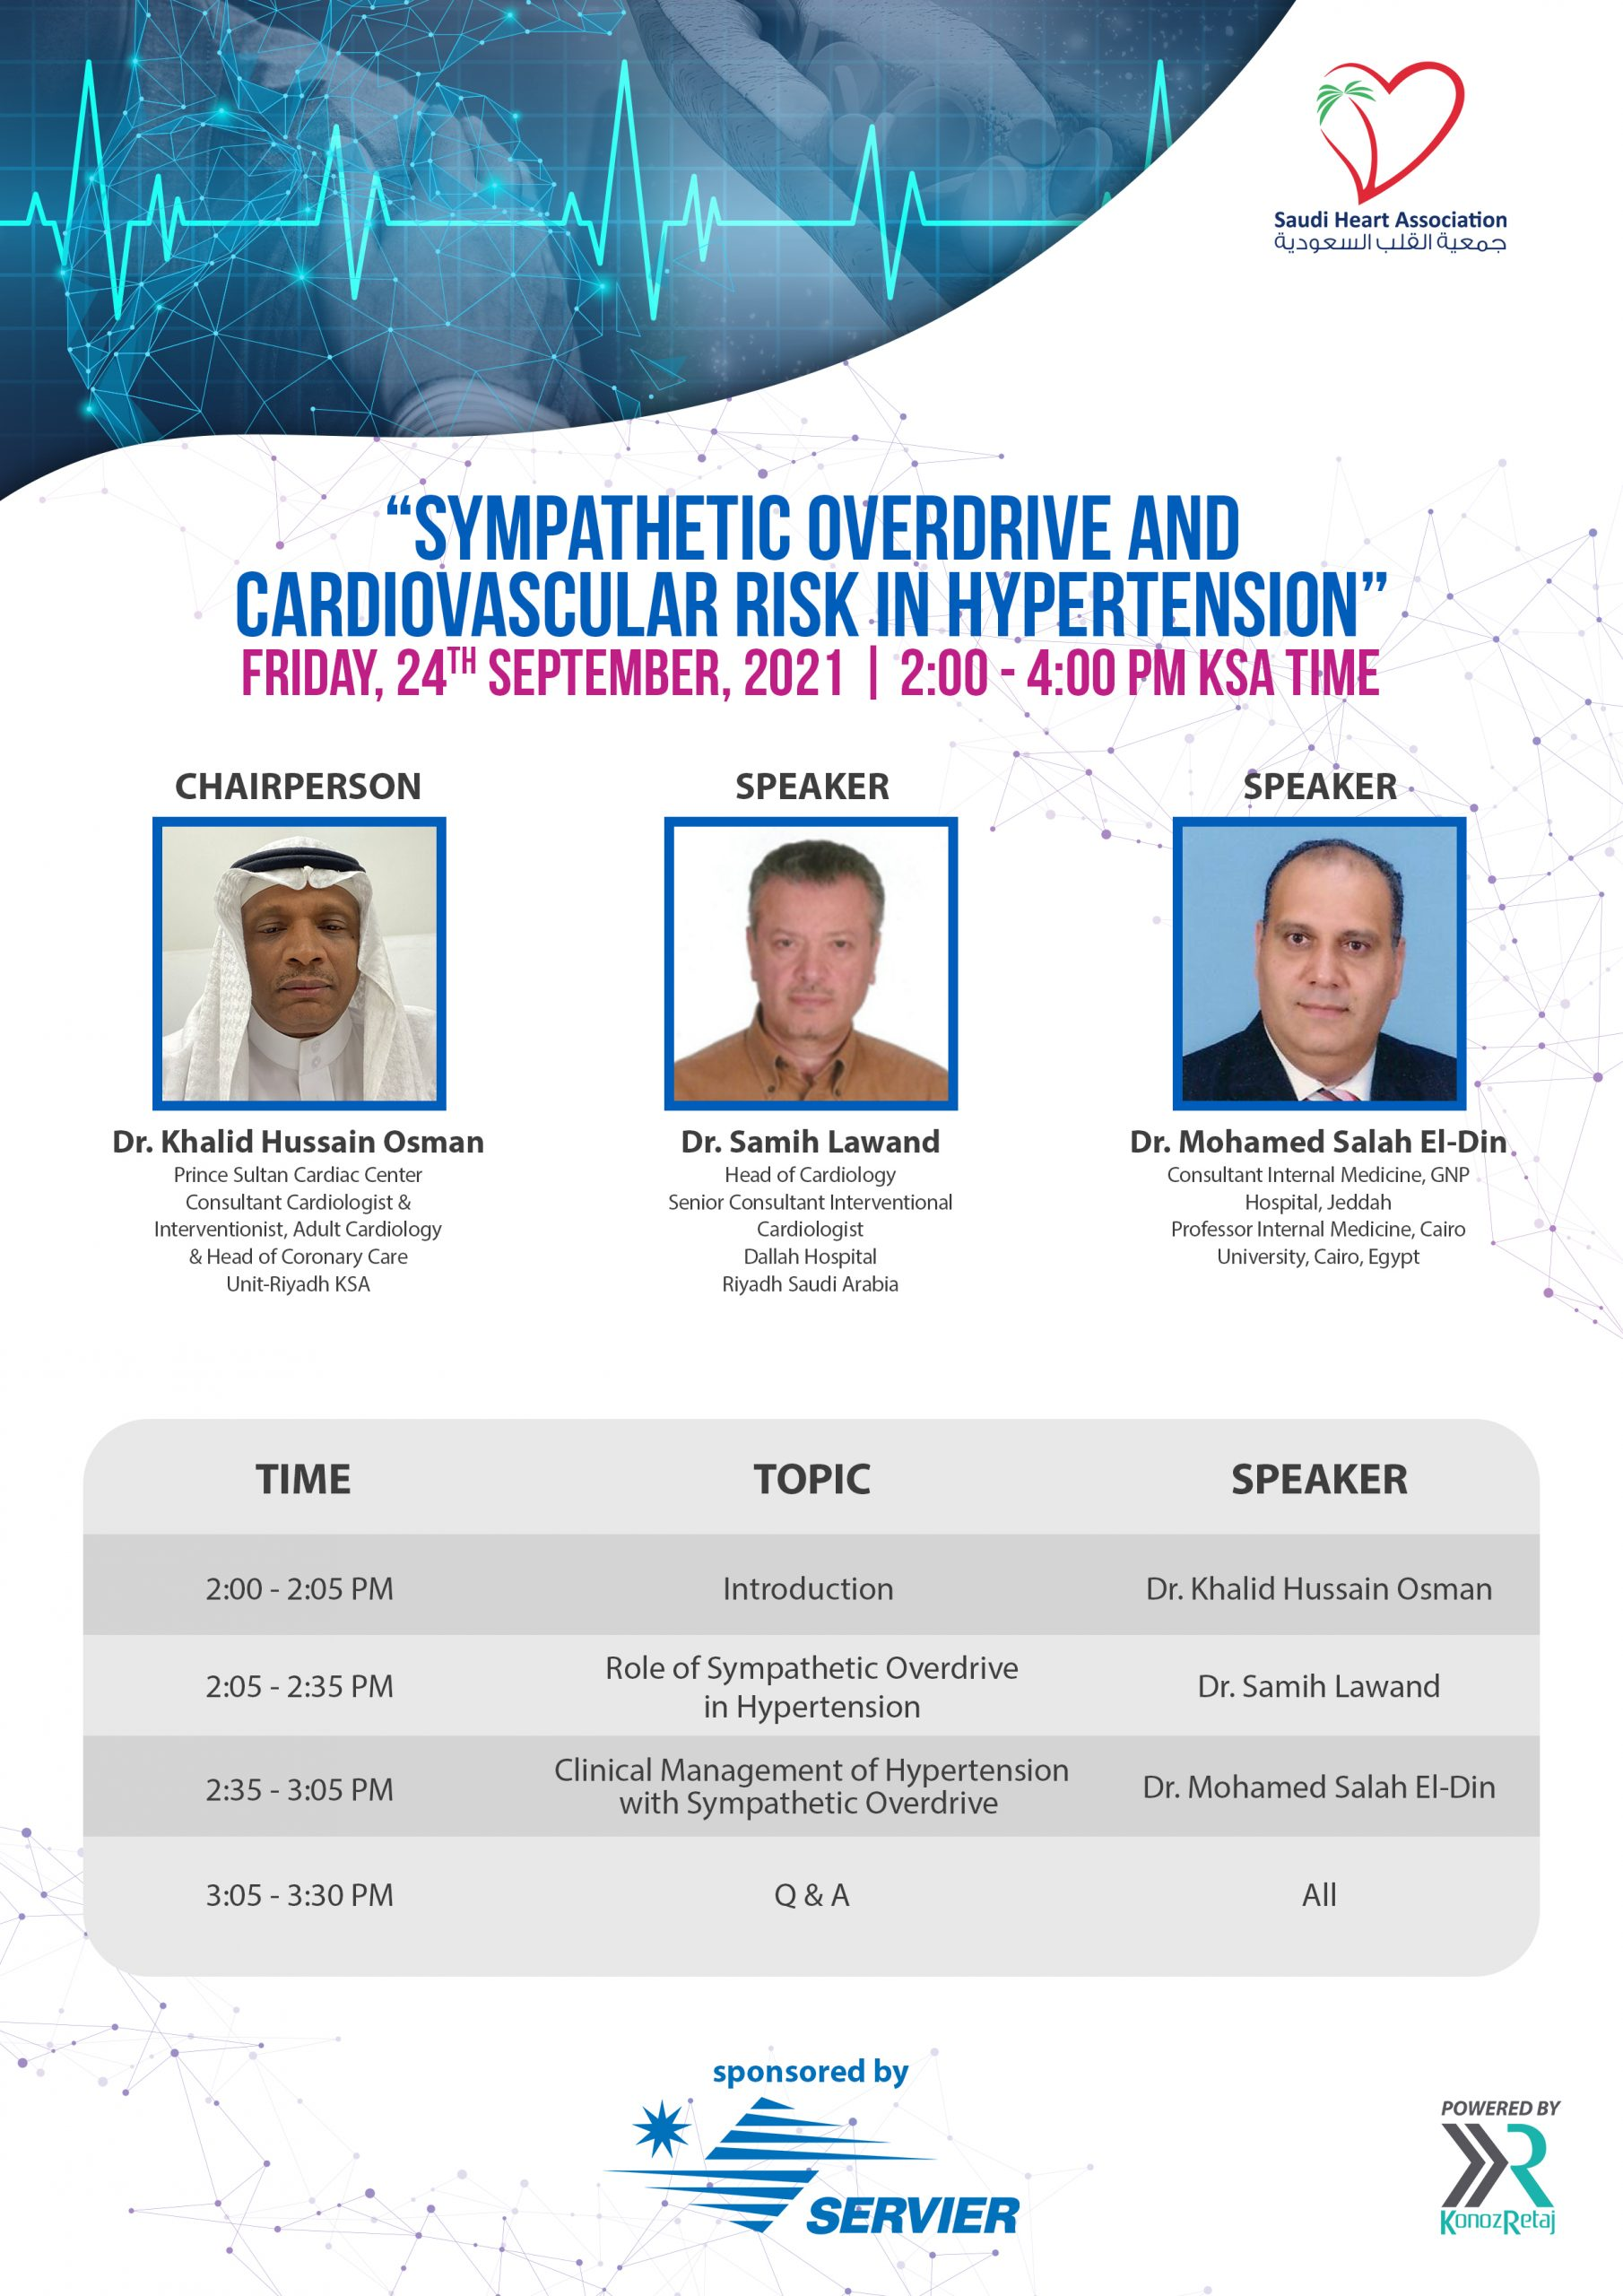 SYMPATHETIC OVERDRIVE AND CARDIOVASCULAR RISK IN HYPERTENSION